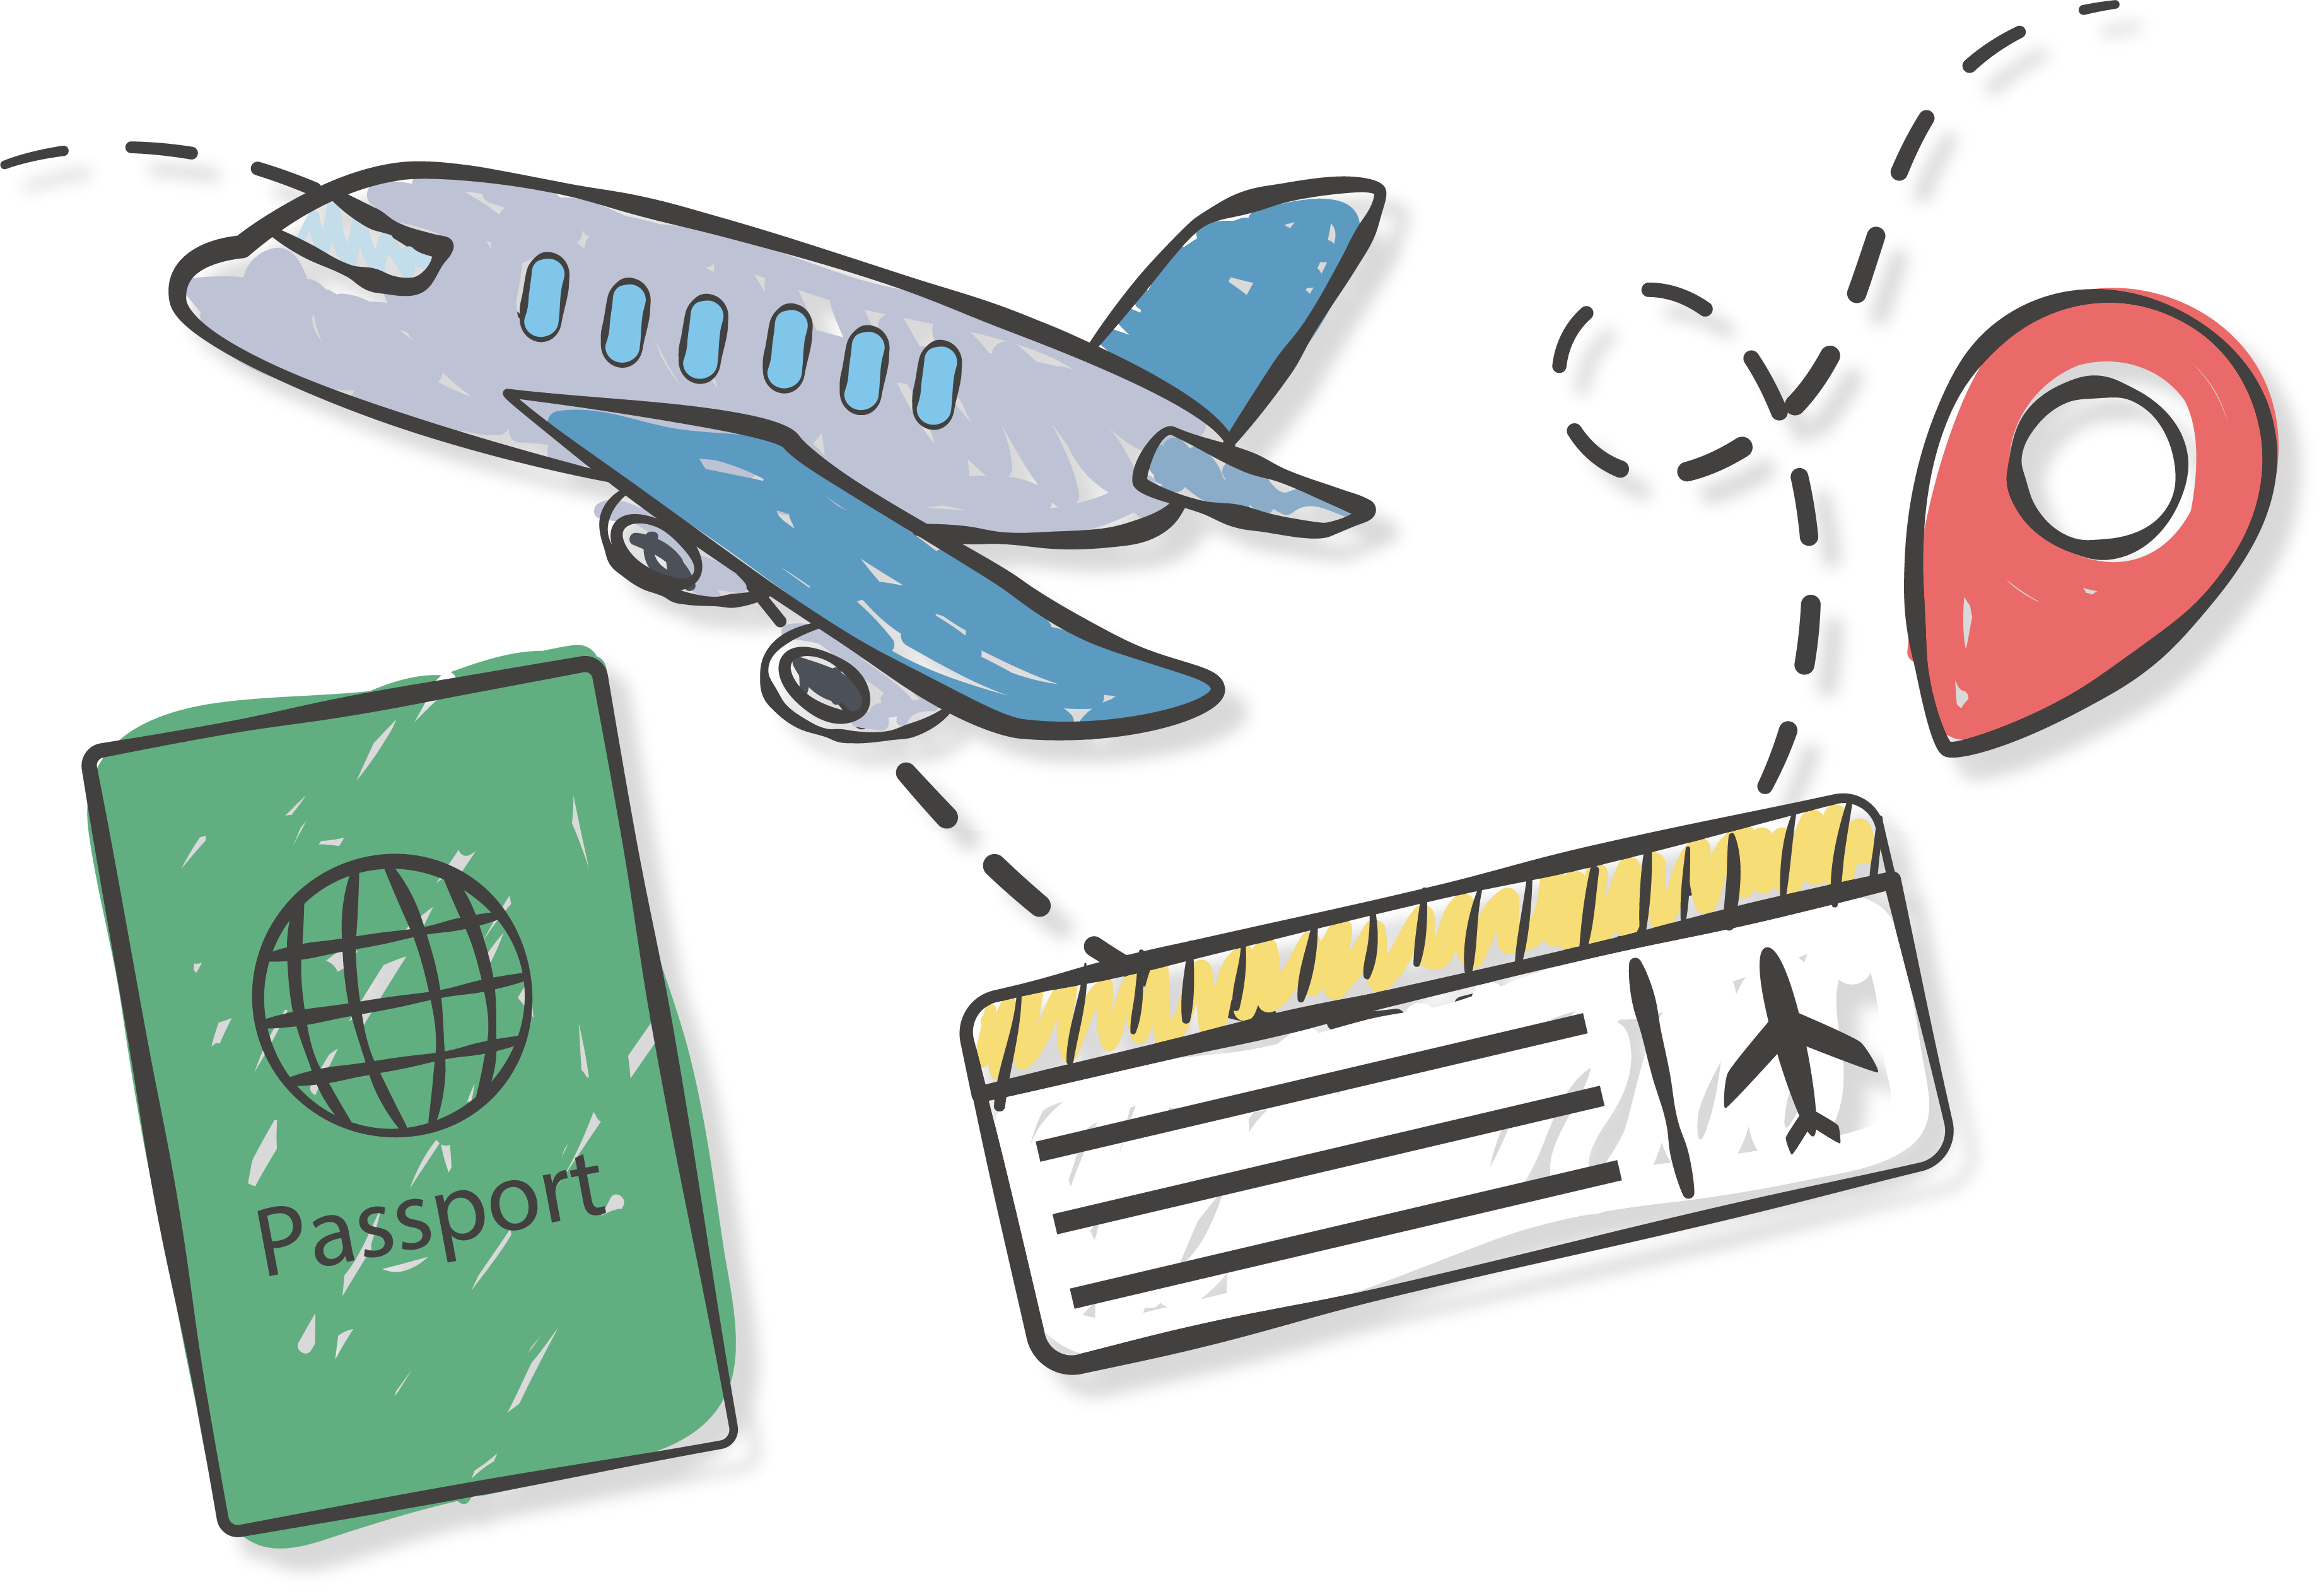 Luggage vector vintage airline. Very first step of